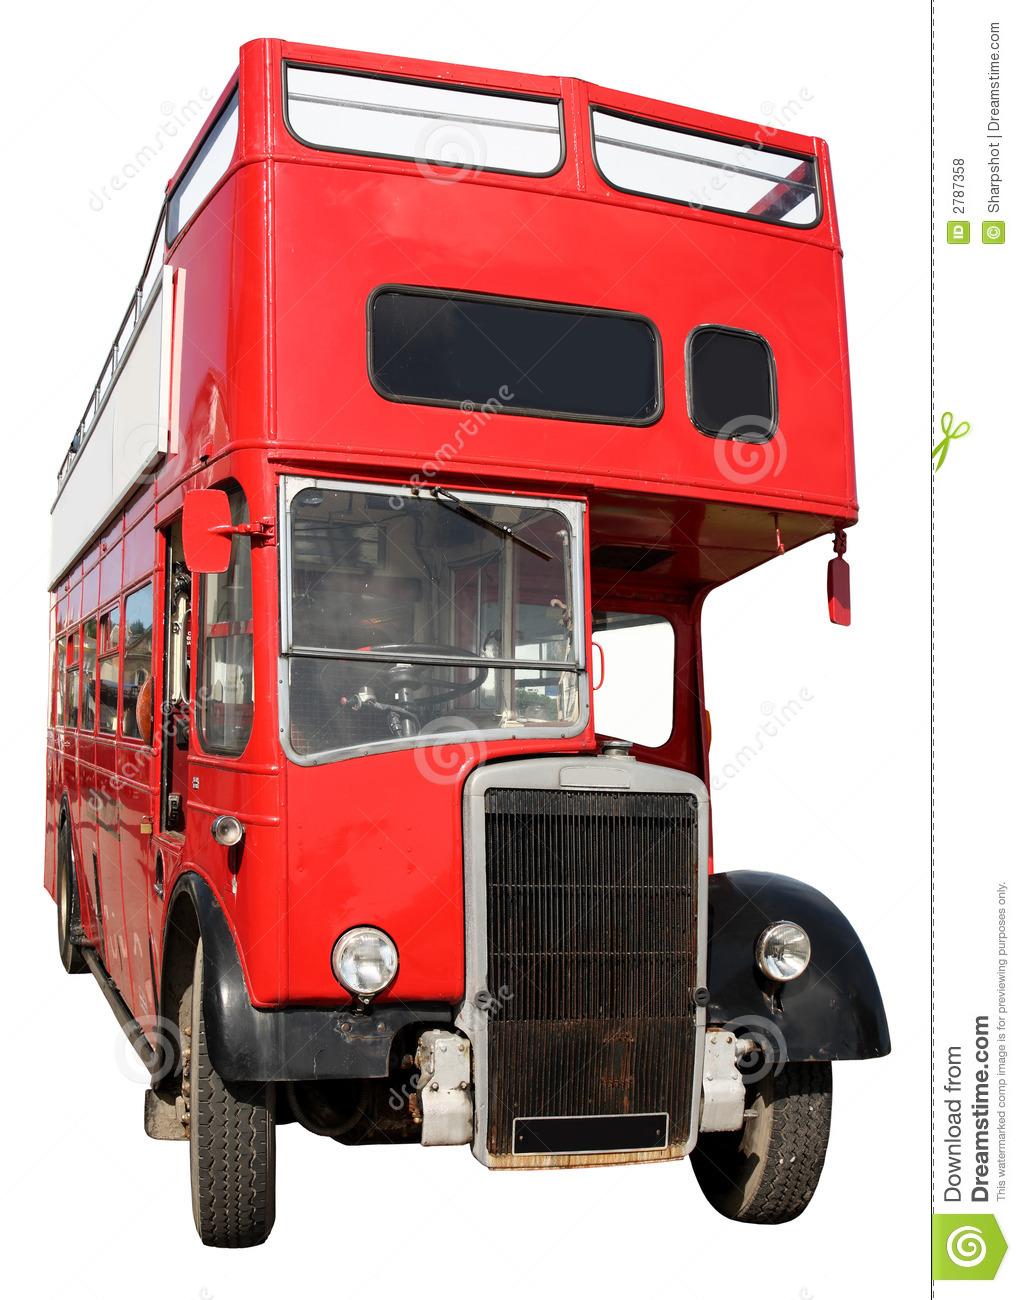 un vieux bus rouge de londres photo stock image du fond vieux 2787358. Black Bedroom Furniture Sets. Home Design Ideas